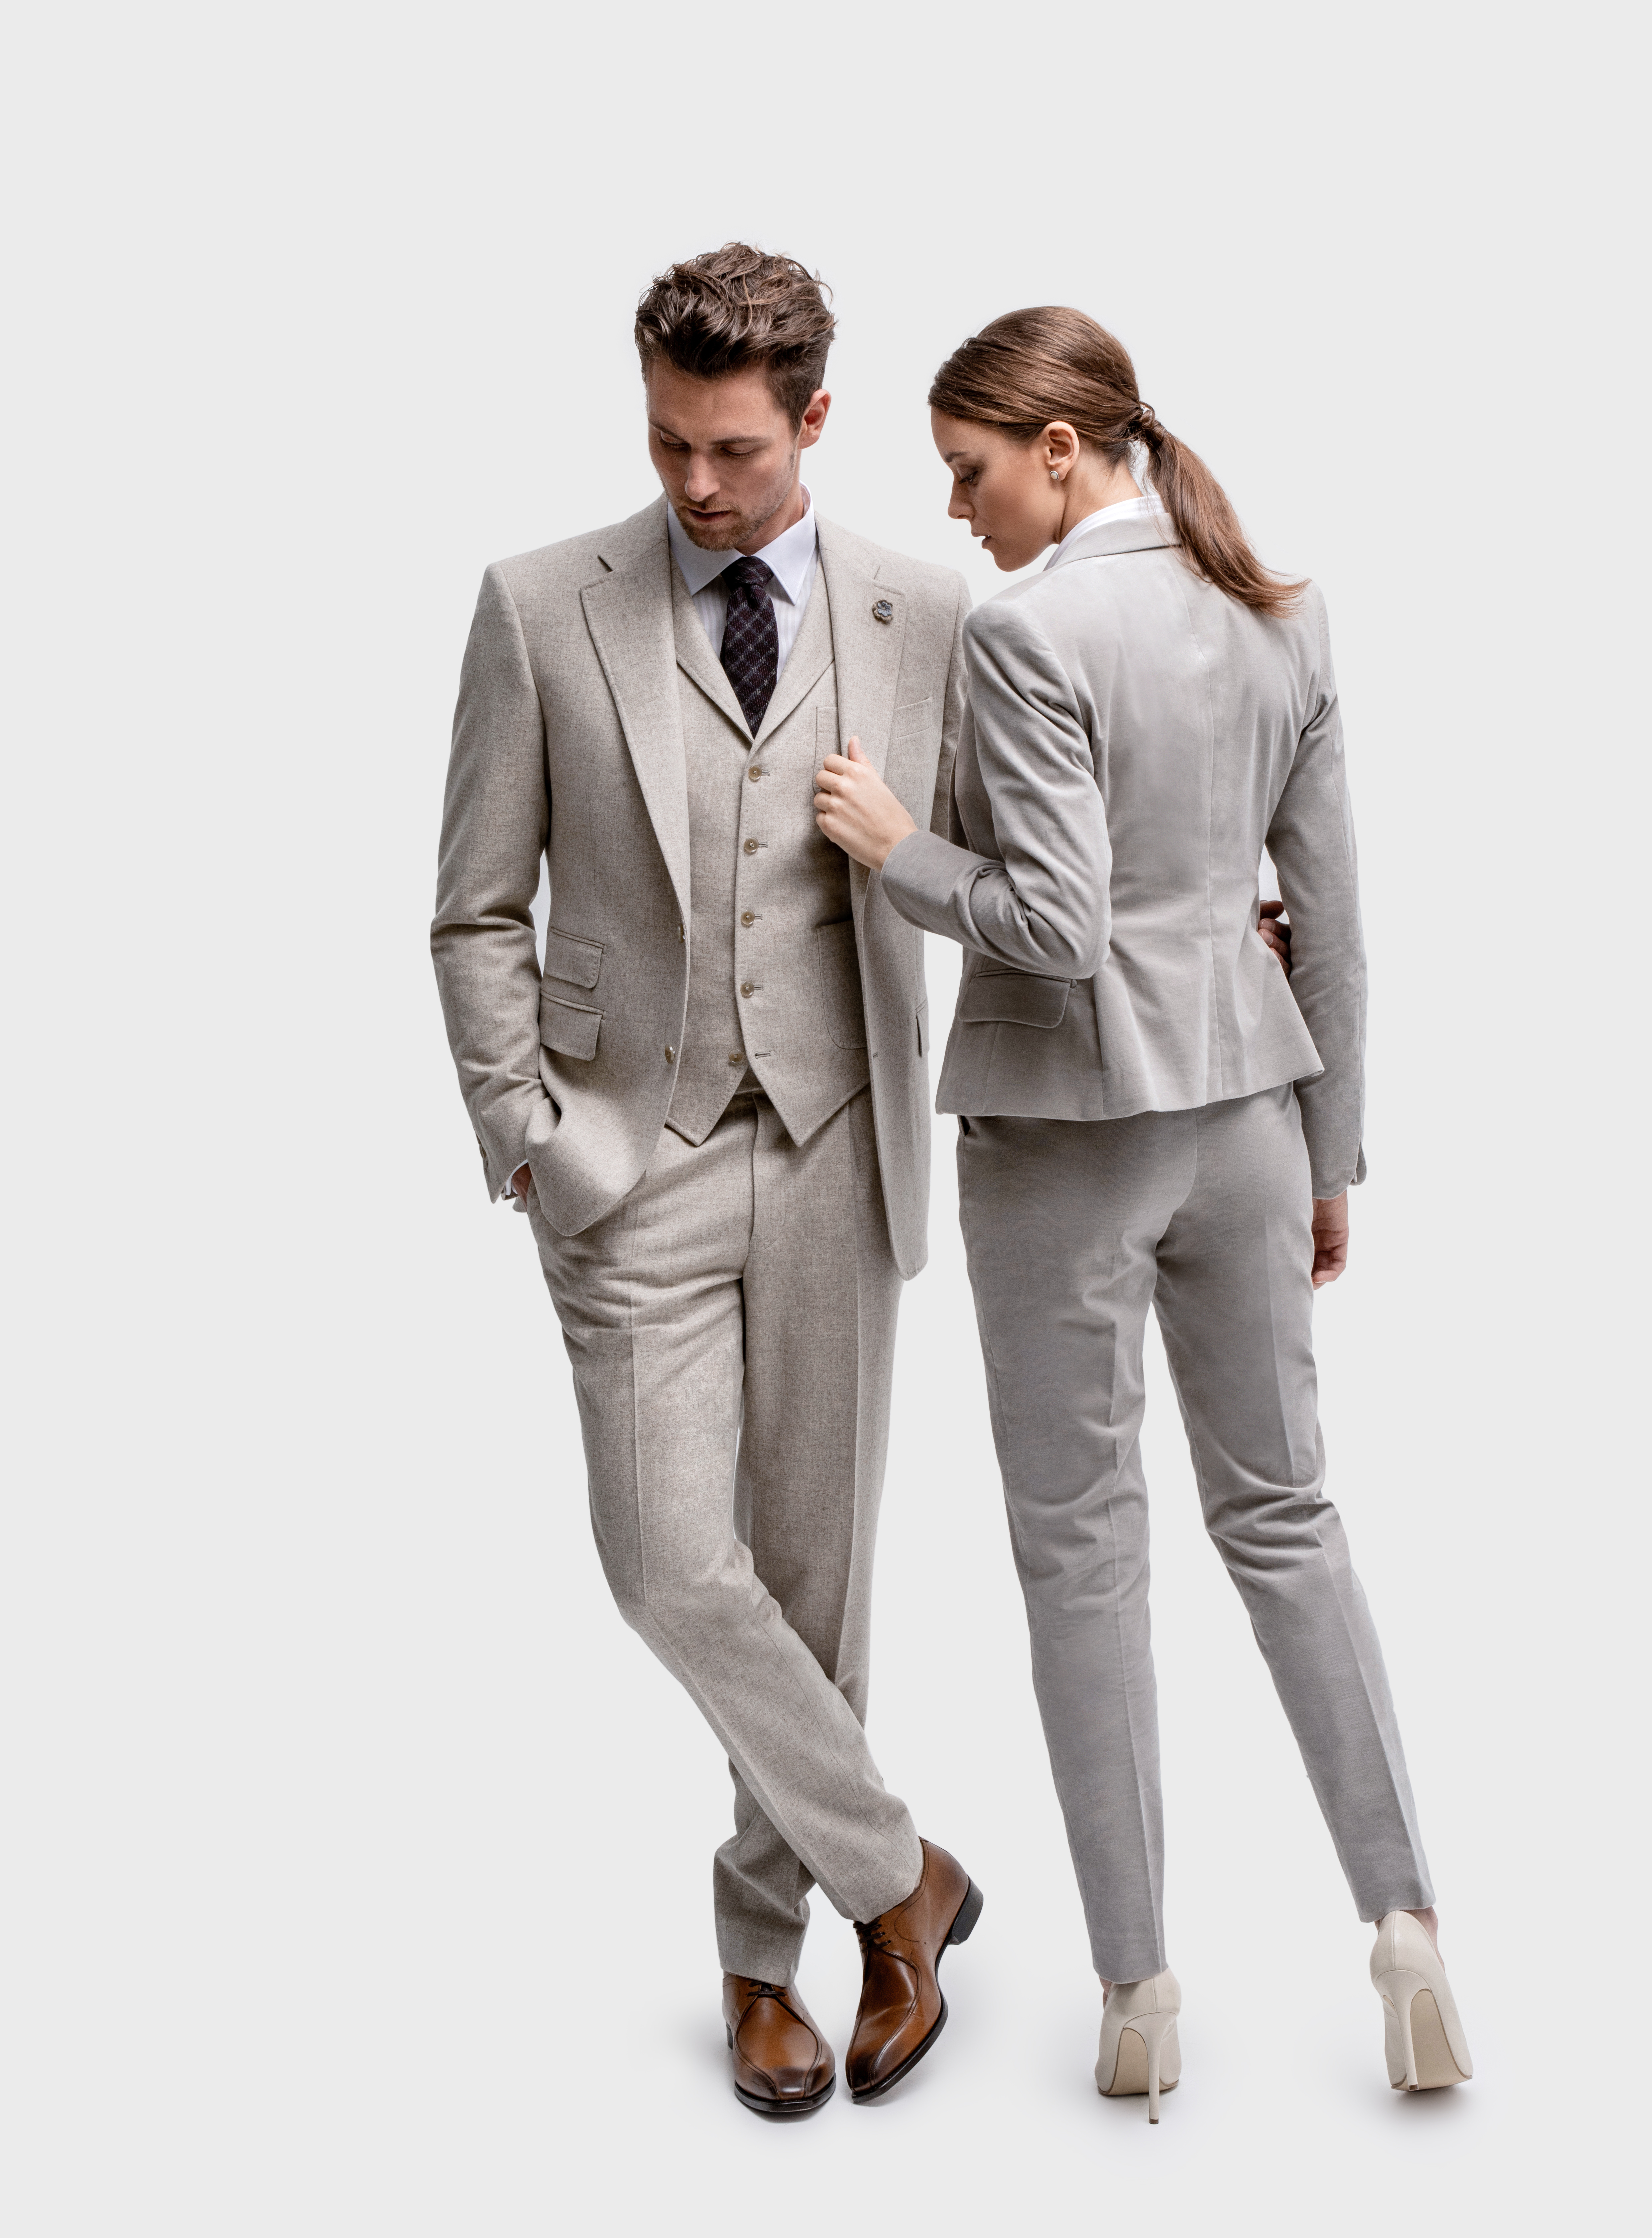 www.richardfox.co Ladies and Gent's custom made matching suits